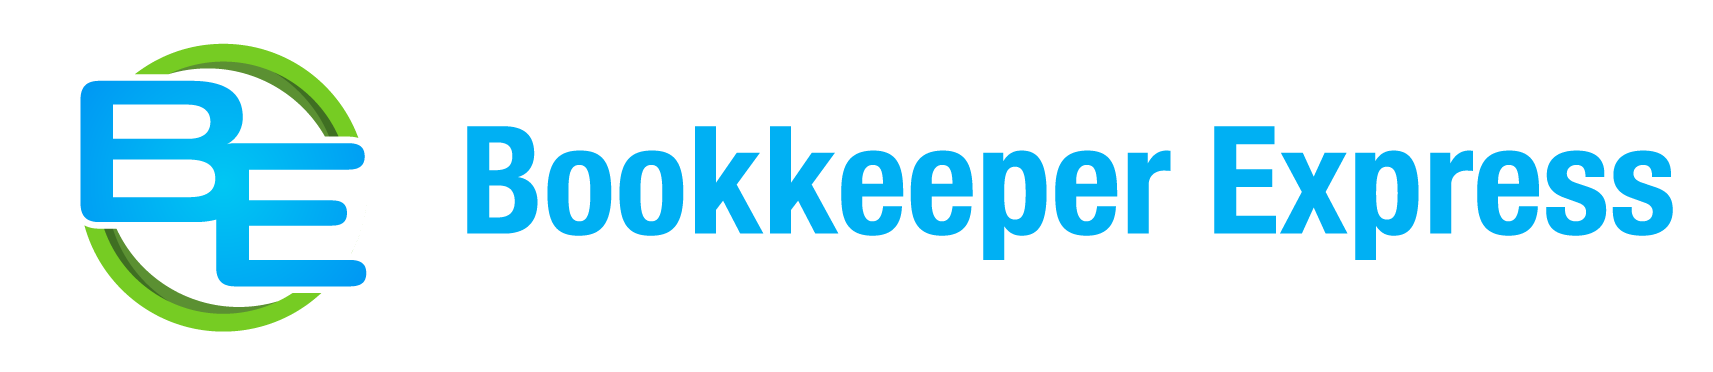 Bookkeeper Express Logo